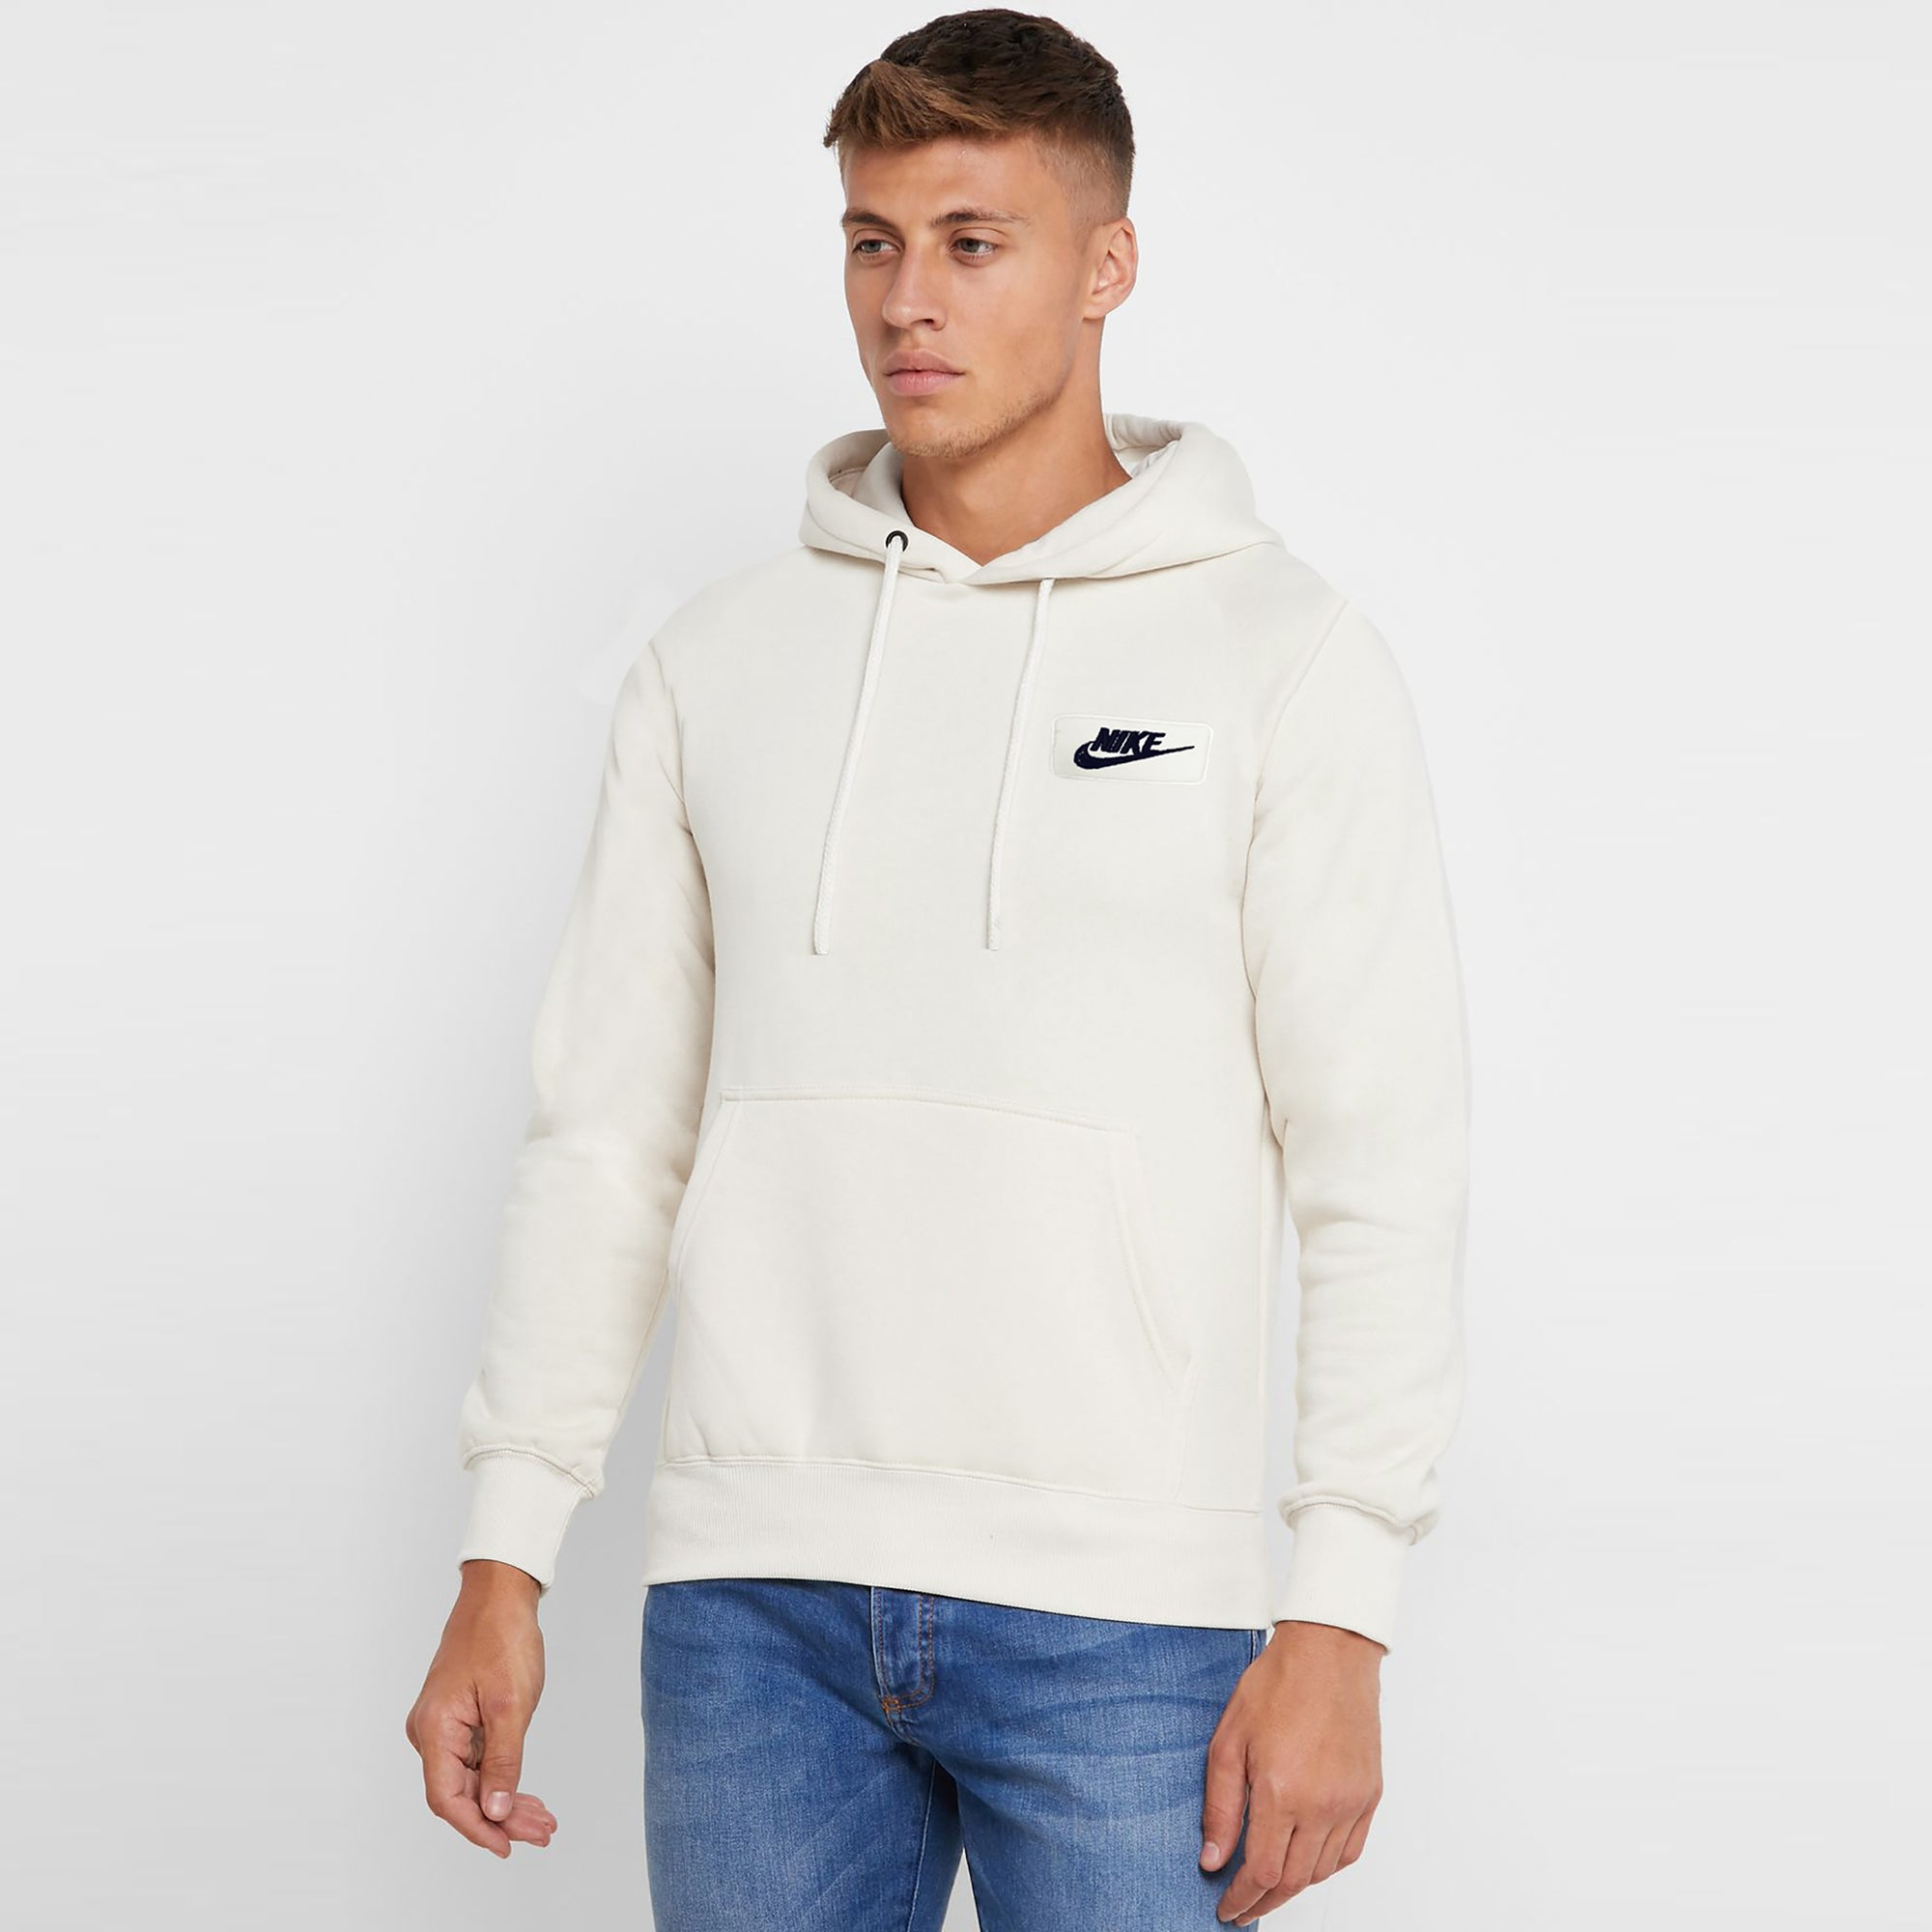 NK Fleece White with Navy Embroidery Pullover Hoodie For Men-White-SP1012